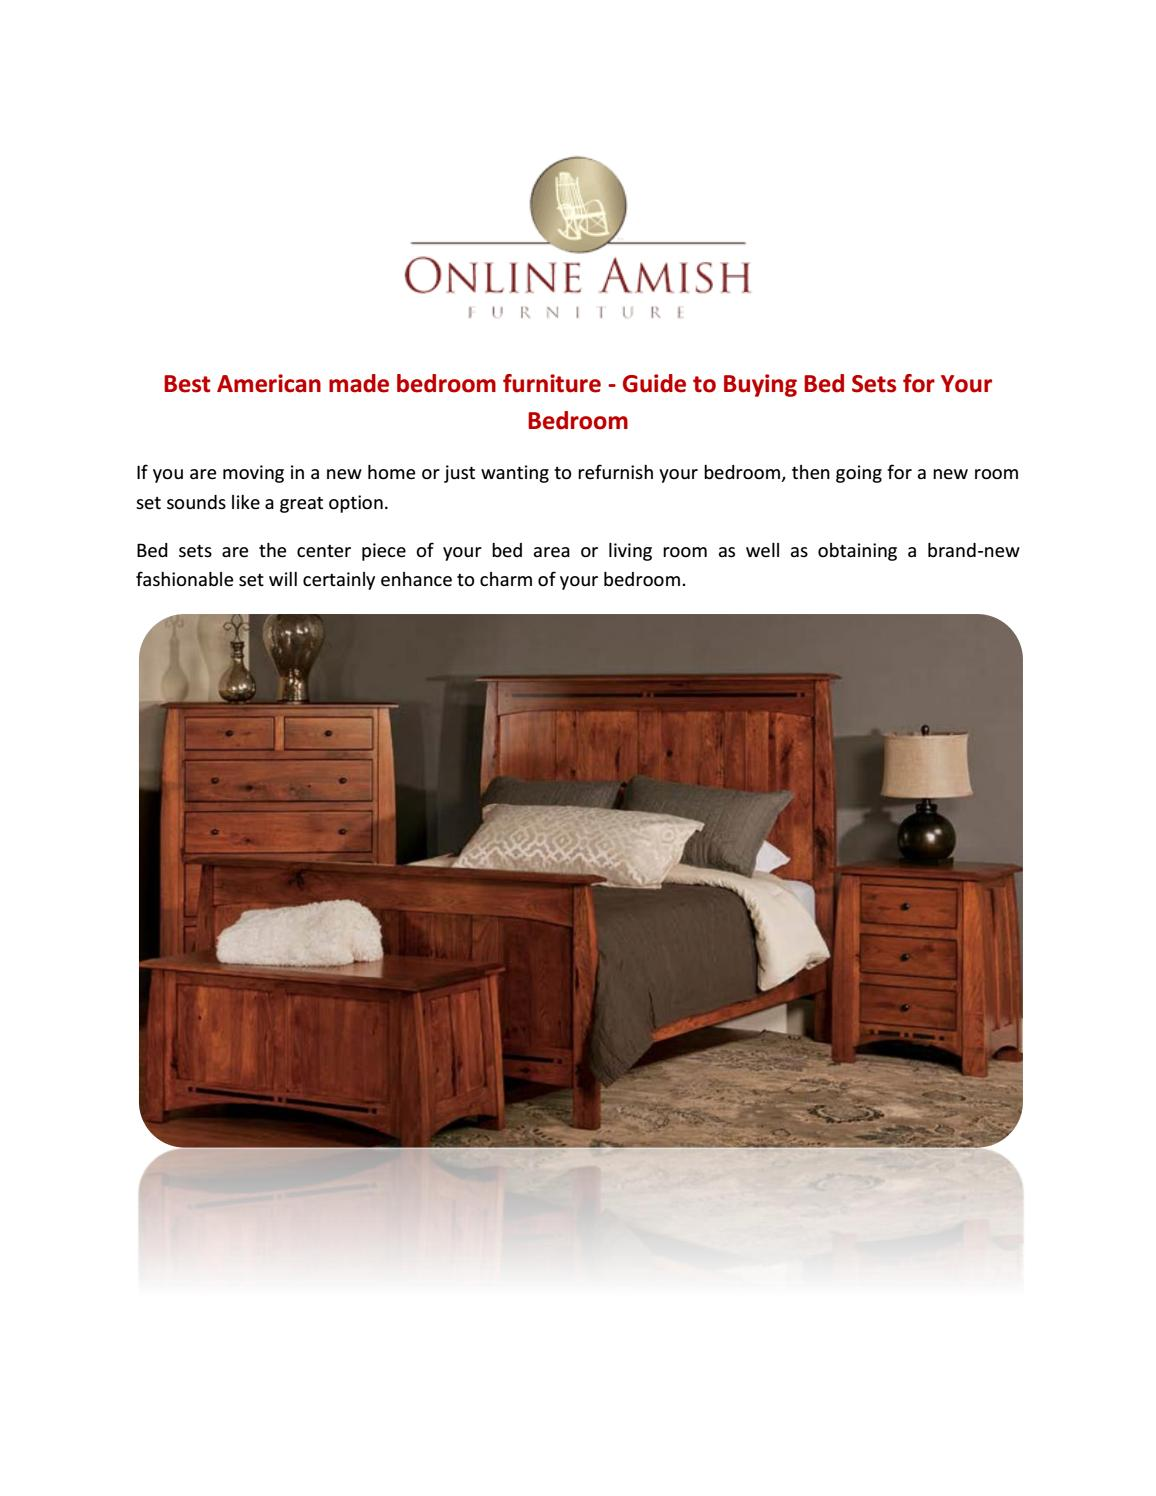 Best american made bedroom furniture guide to buying bed sets for your bedroom by online amish furniture issuu